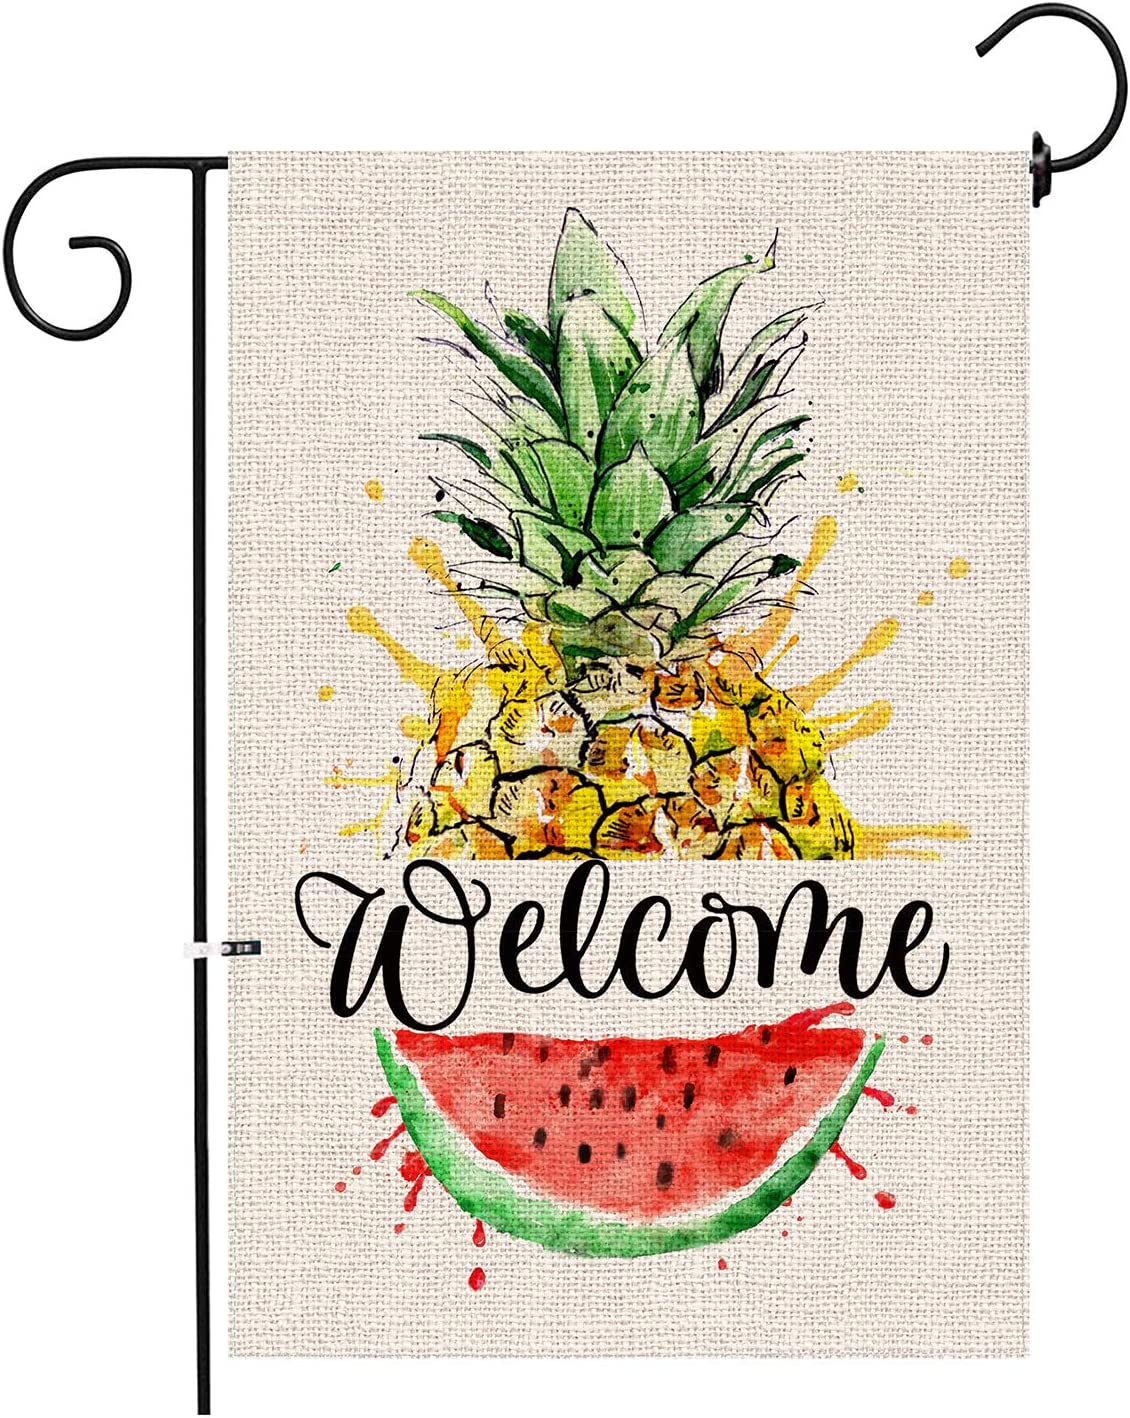 Hexagram Pineapple Welcome Summer Garden Flag,Yard Burlap Garden Flag Double Sided,Decorative Pineapple and Watermelon Ooutdoor Decor,Small Garden Flag 12x18 Prime